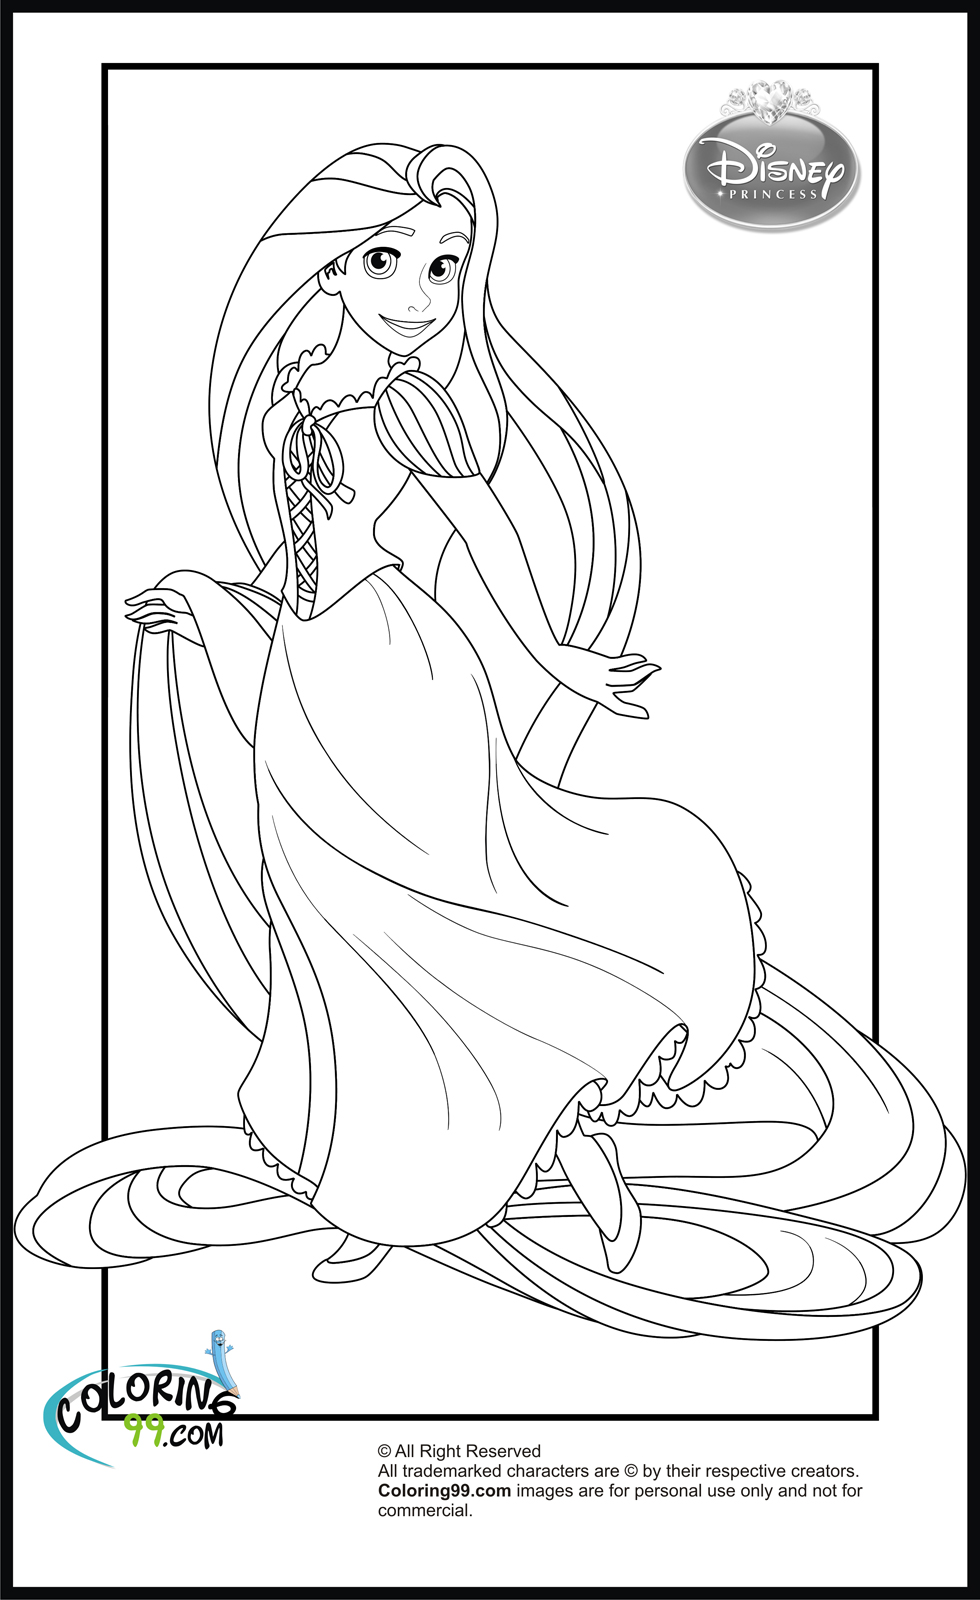 Disney princess coloring pages team colors for Disney tangled coloring pages